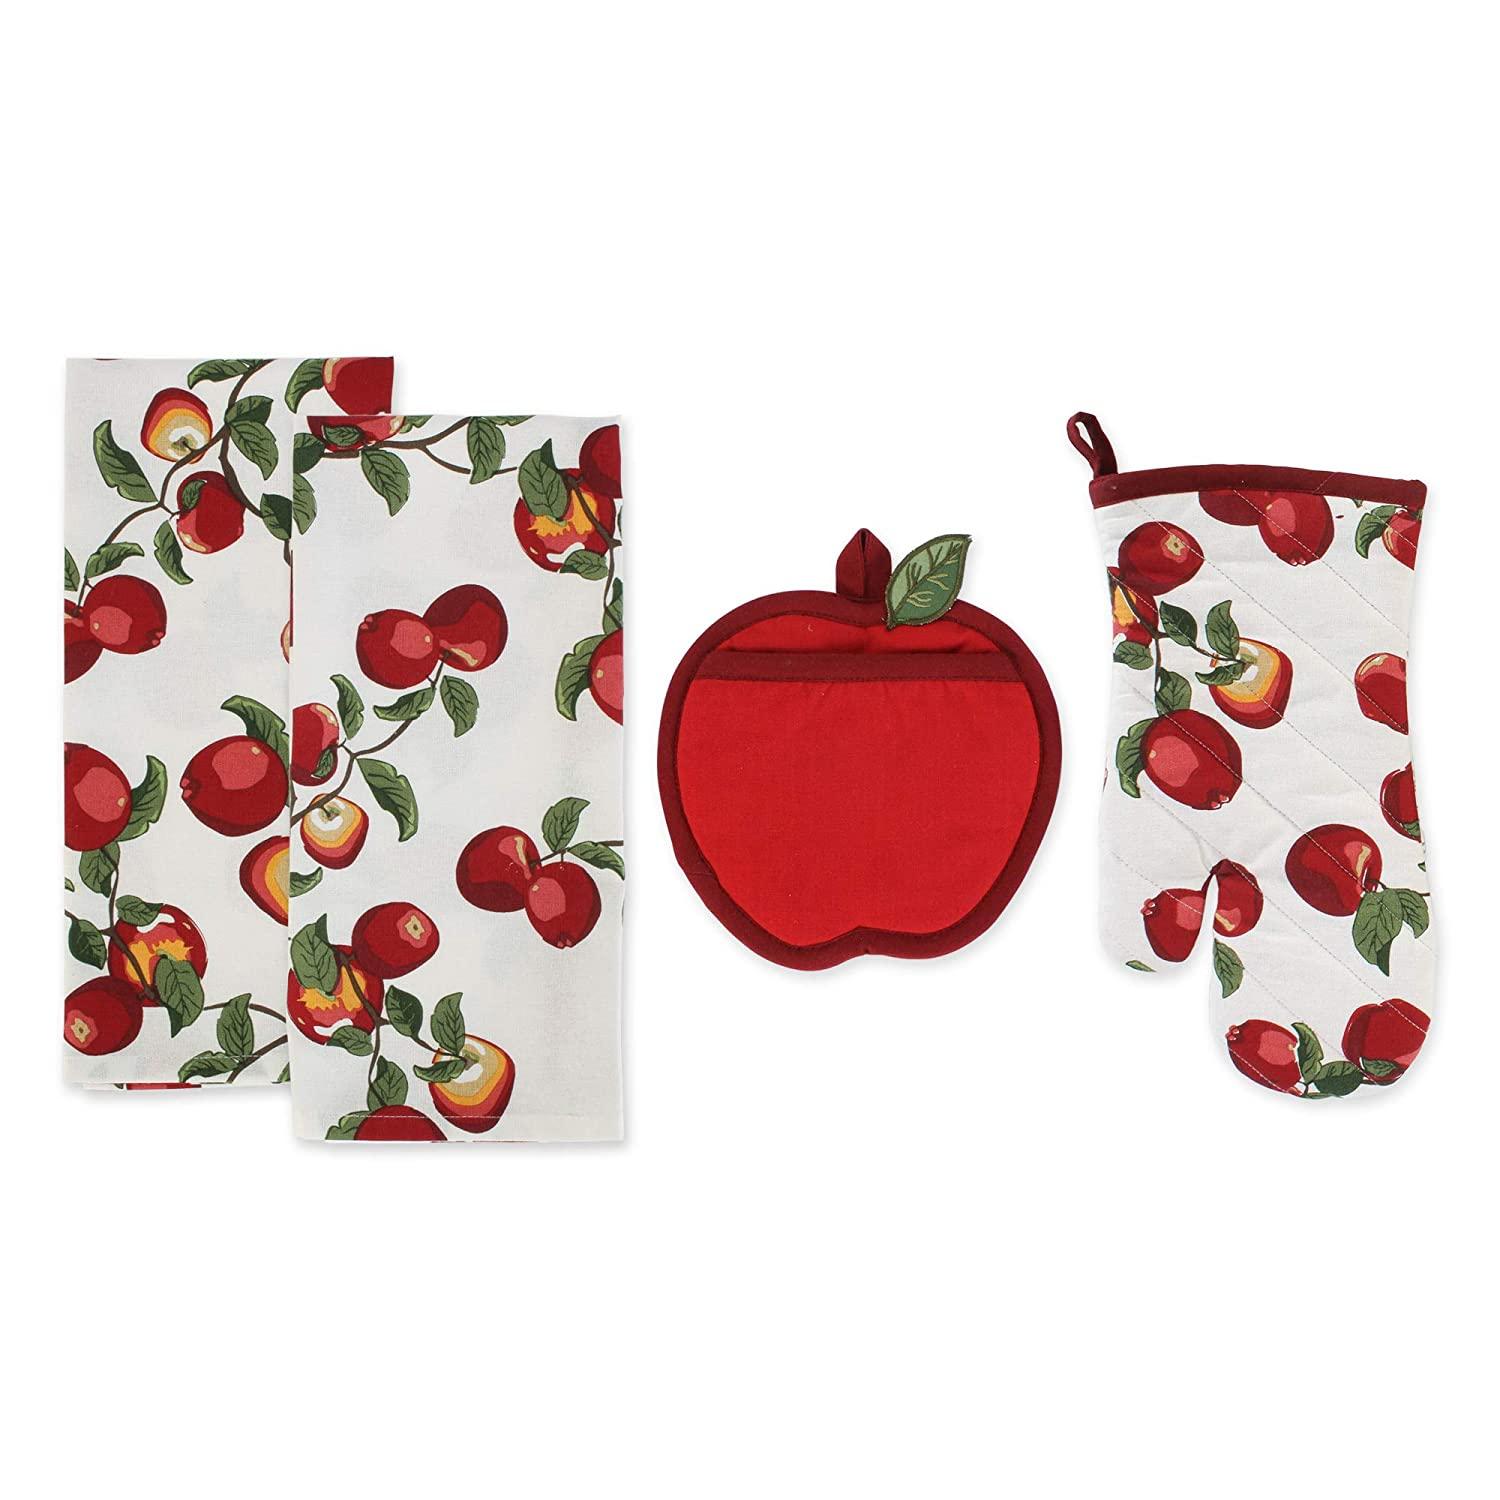 DII Apple Orchard Kitchen Textiles, Potholder 8x8, Oven Mitt 7x13, Dishtowels 18x28, 4 Piece